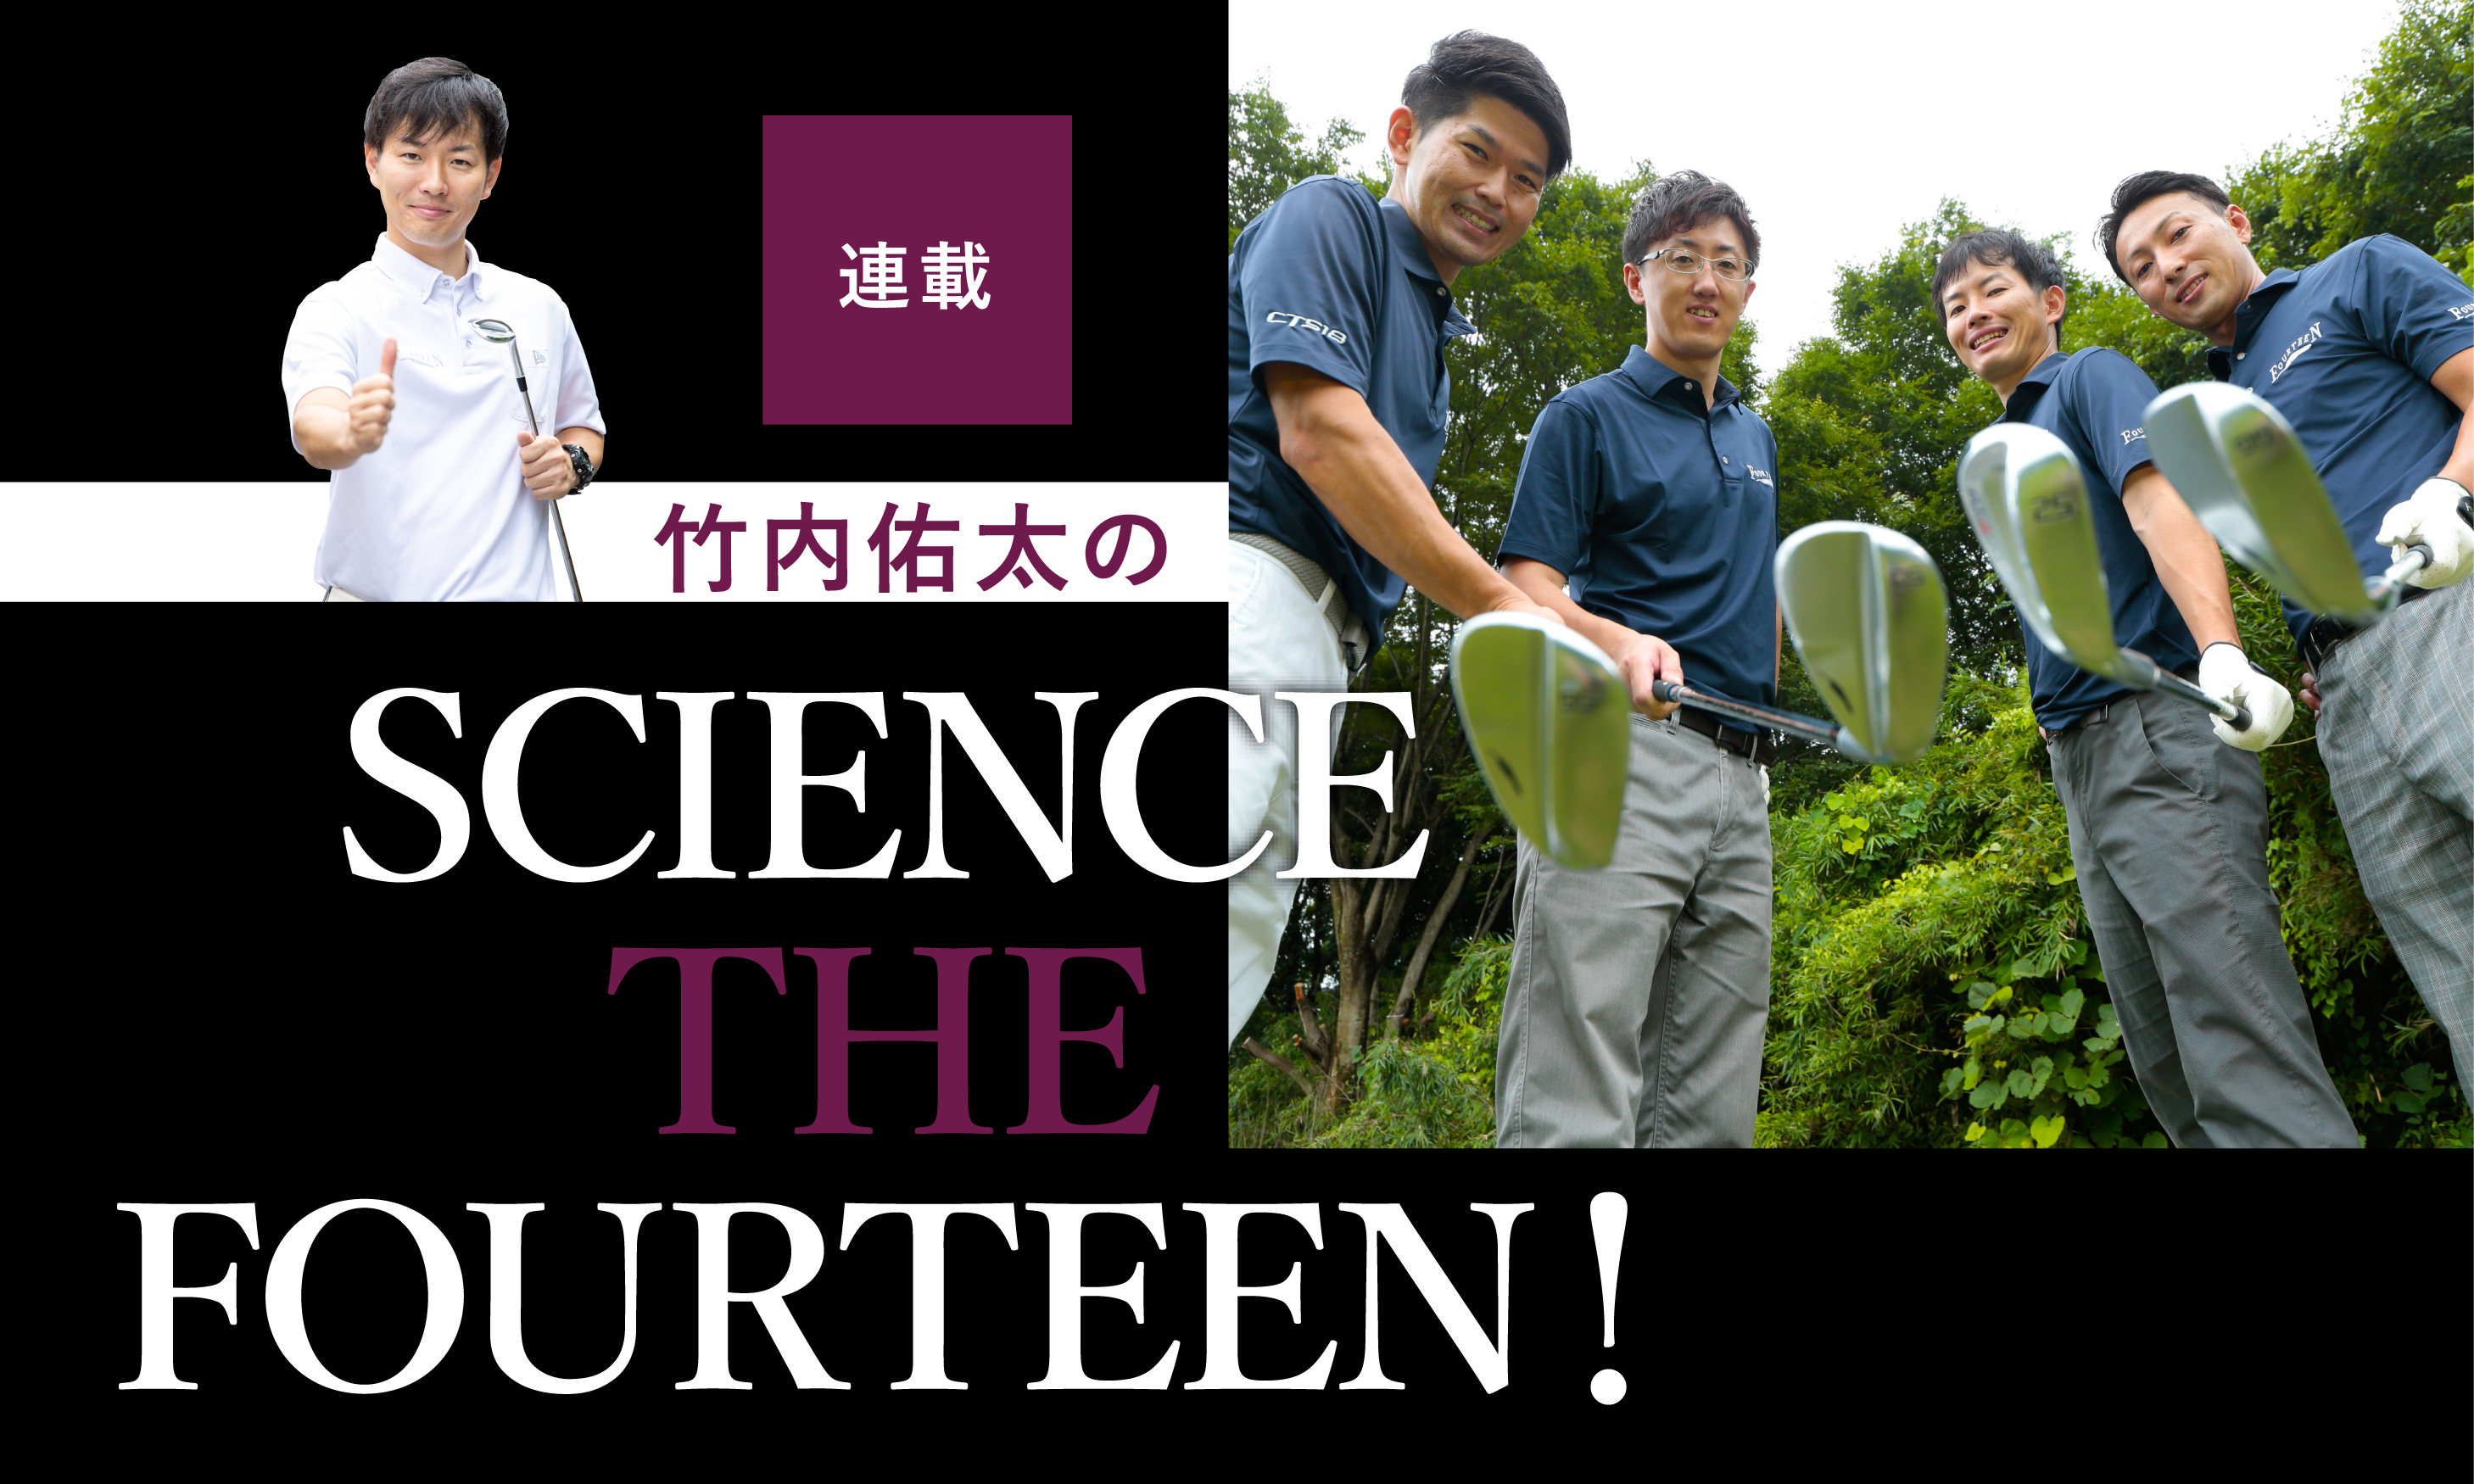 SCIENCE THE FOURTEEN!